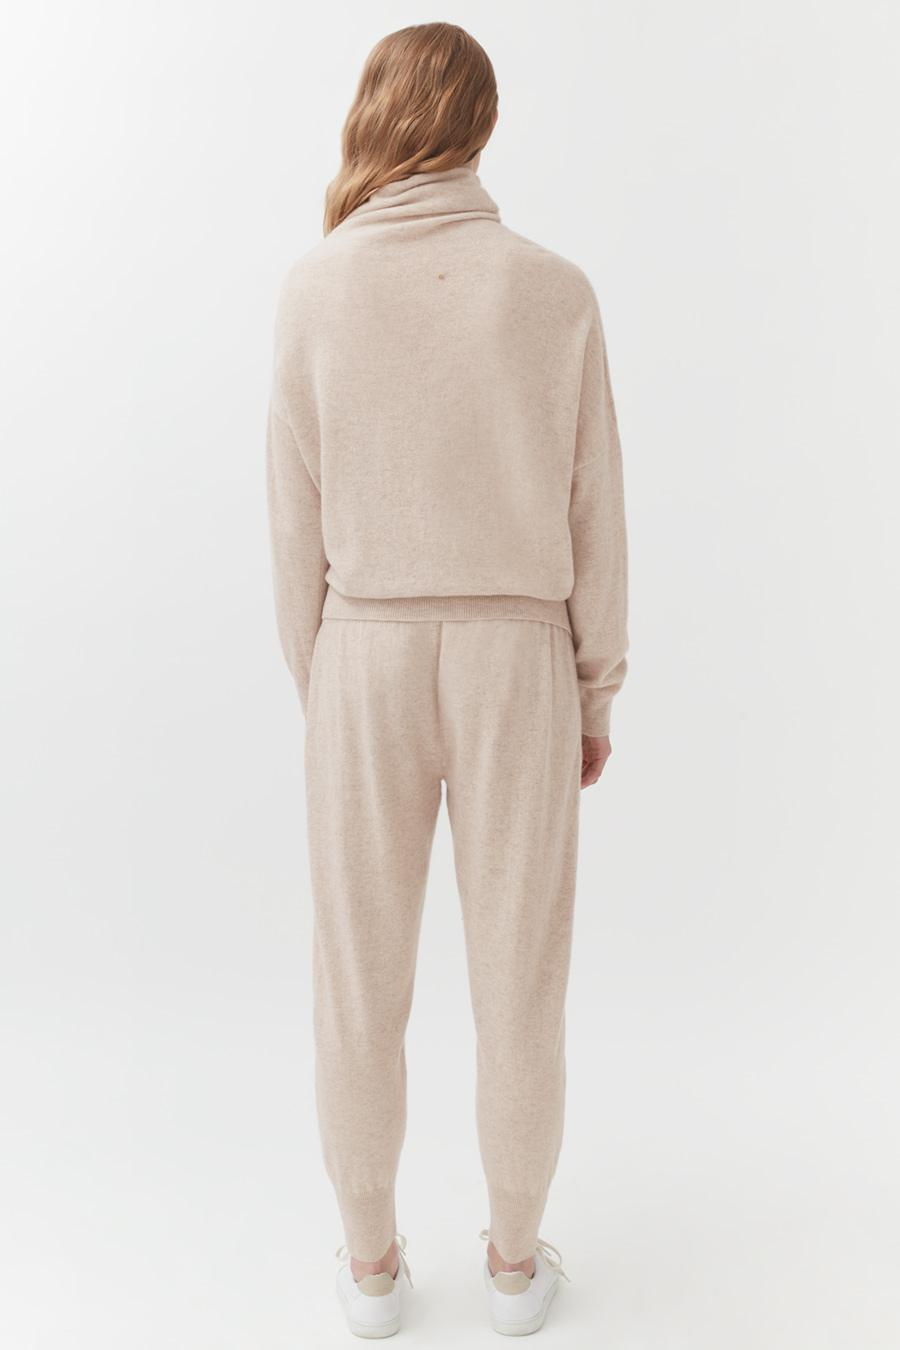 Women's Tapered Pant in Beige | Size: Large | Cashmere by Cuyana 2